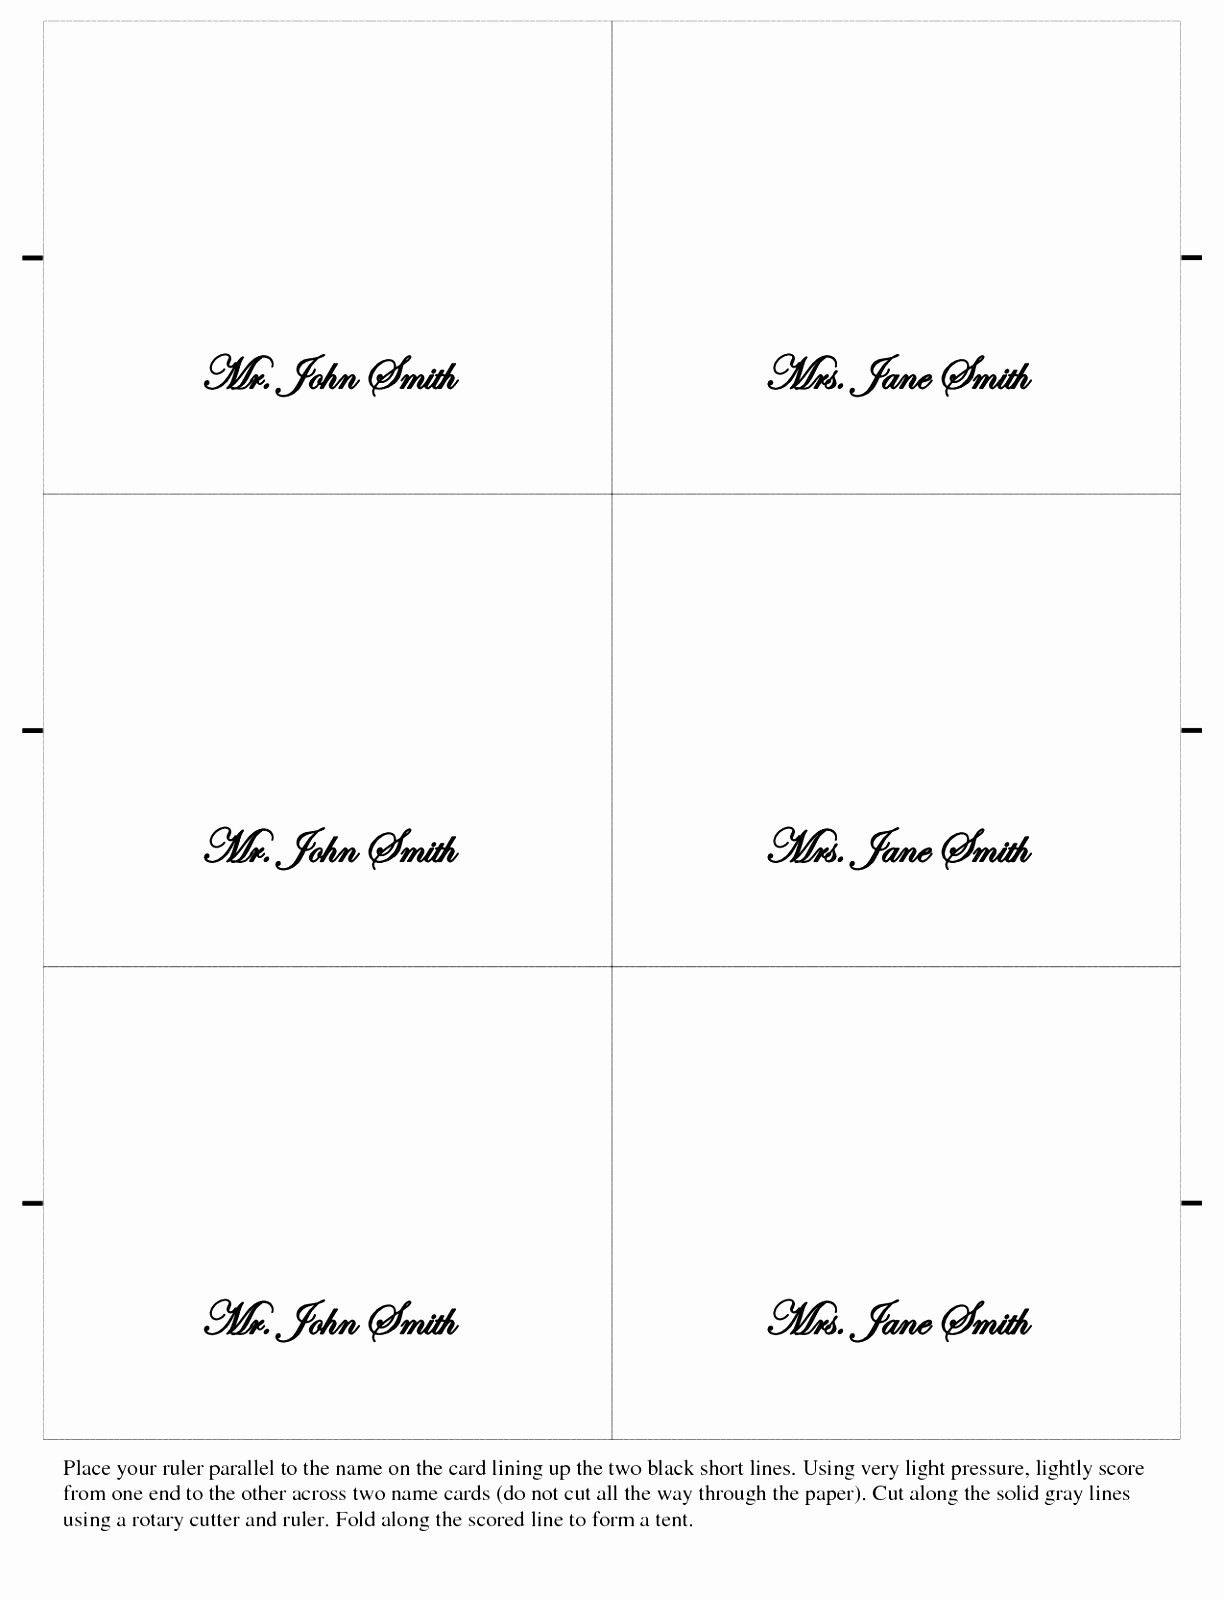 Templates for Cards Free Downloads Luxury 10 Wedding Place Card Templates Free Download Ueewo